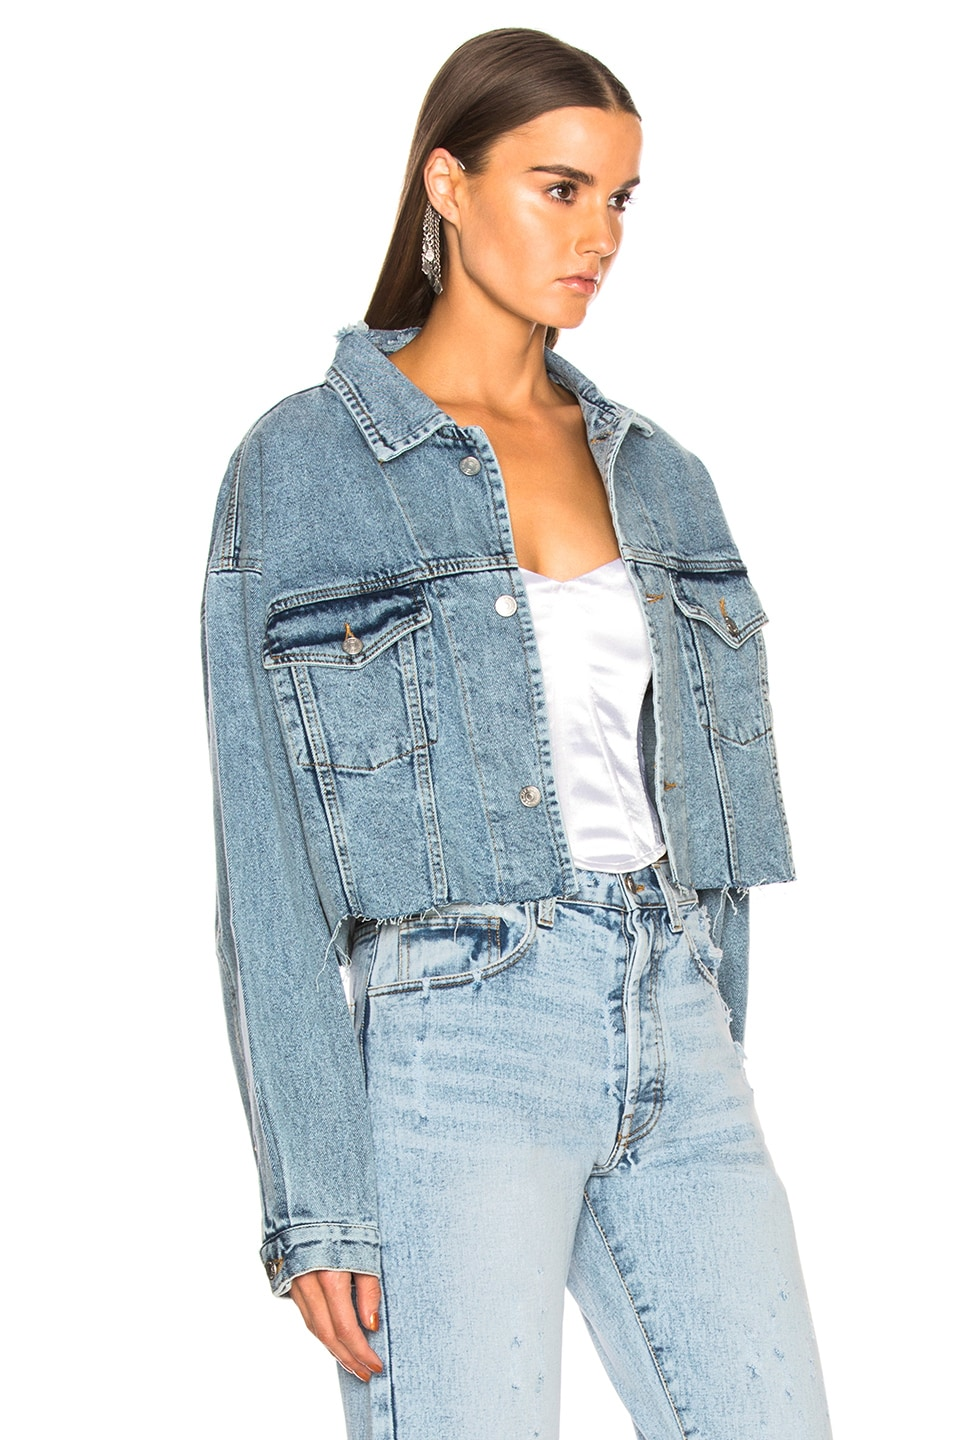 2eee597ee Image 2 of Palmer Girls x Miss Sixty Vintage Cropped Denim Jacket in Light  Wash